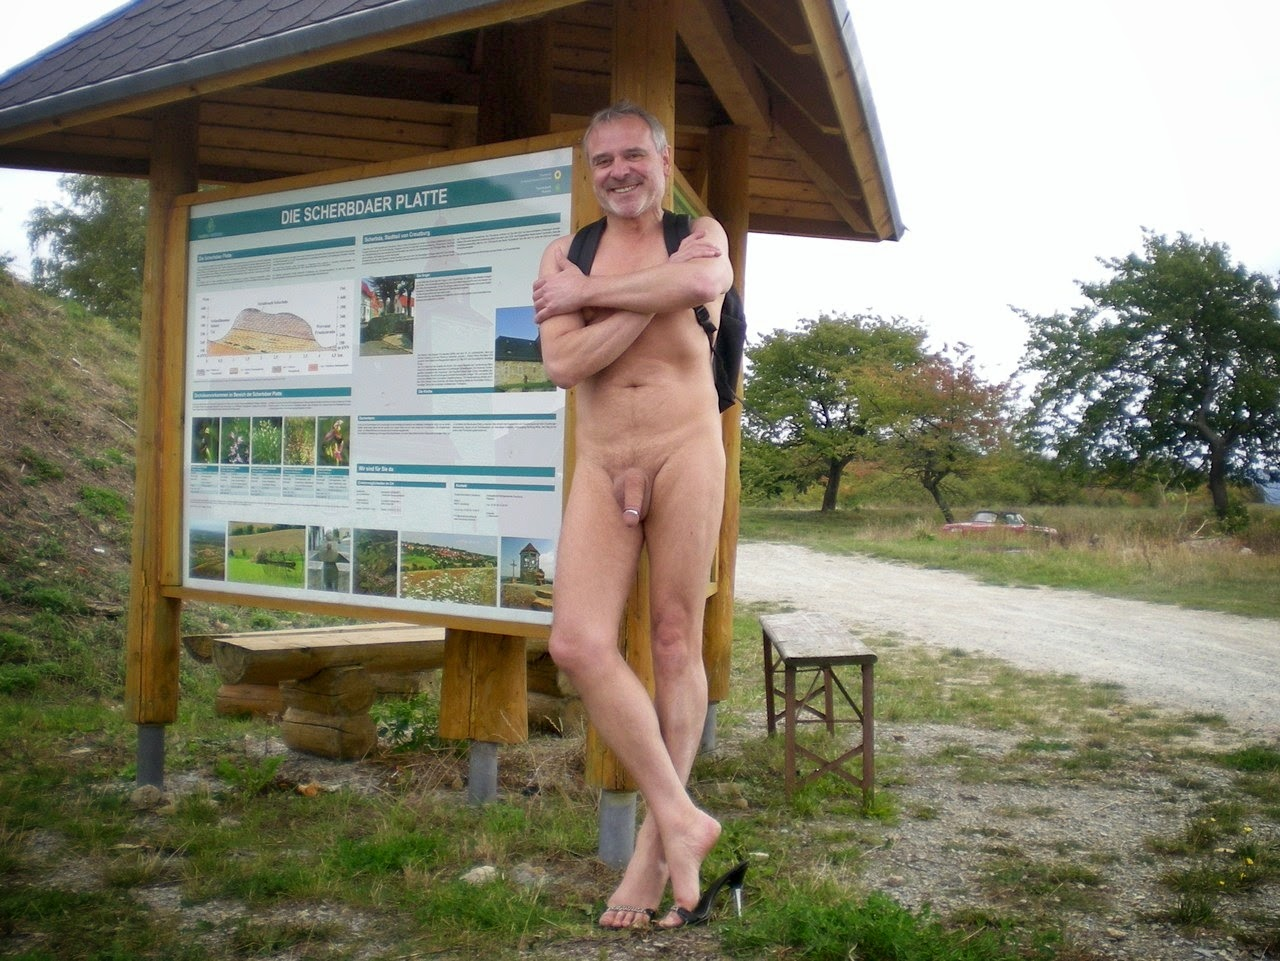 nude north carolina women